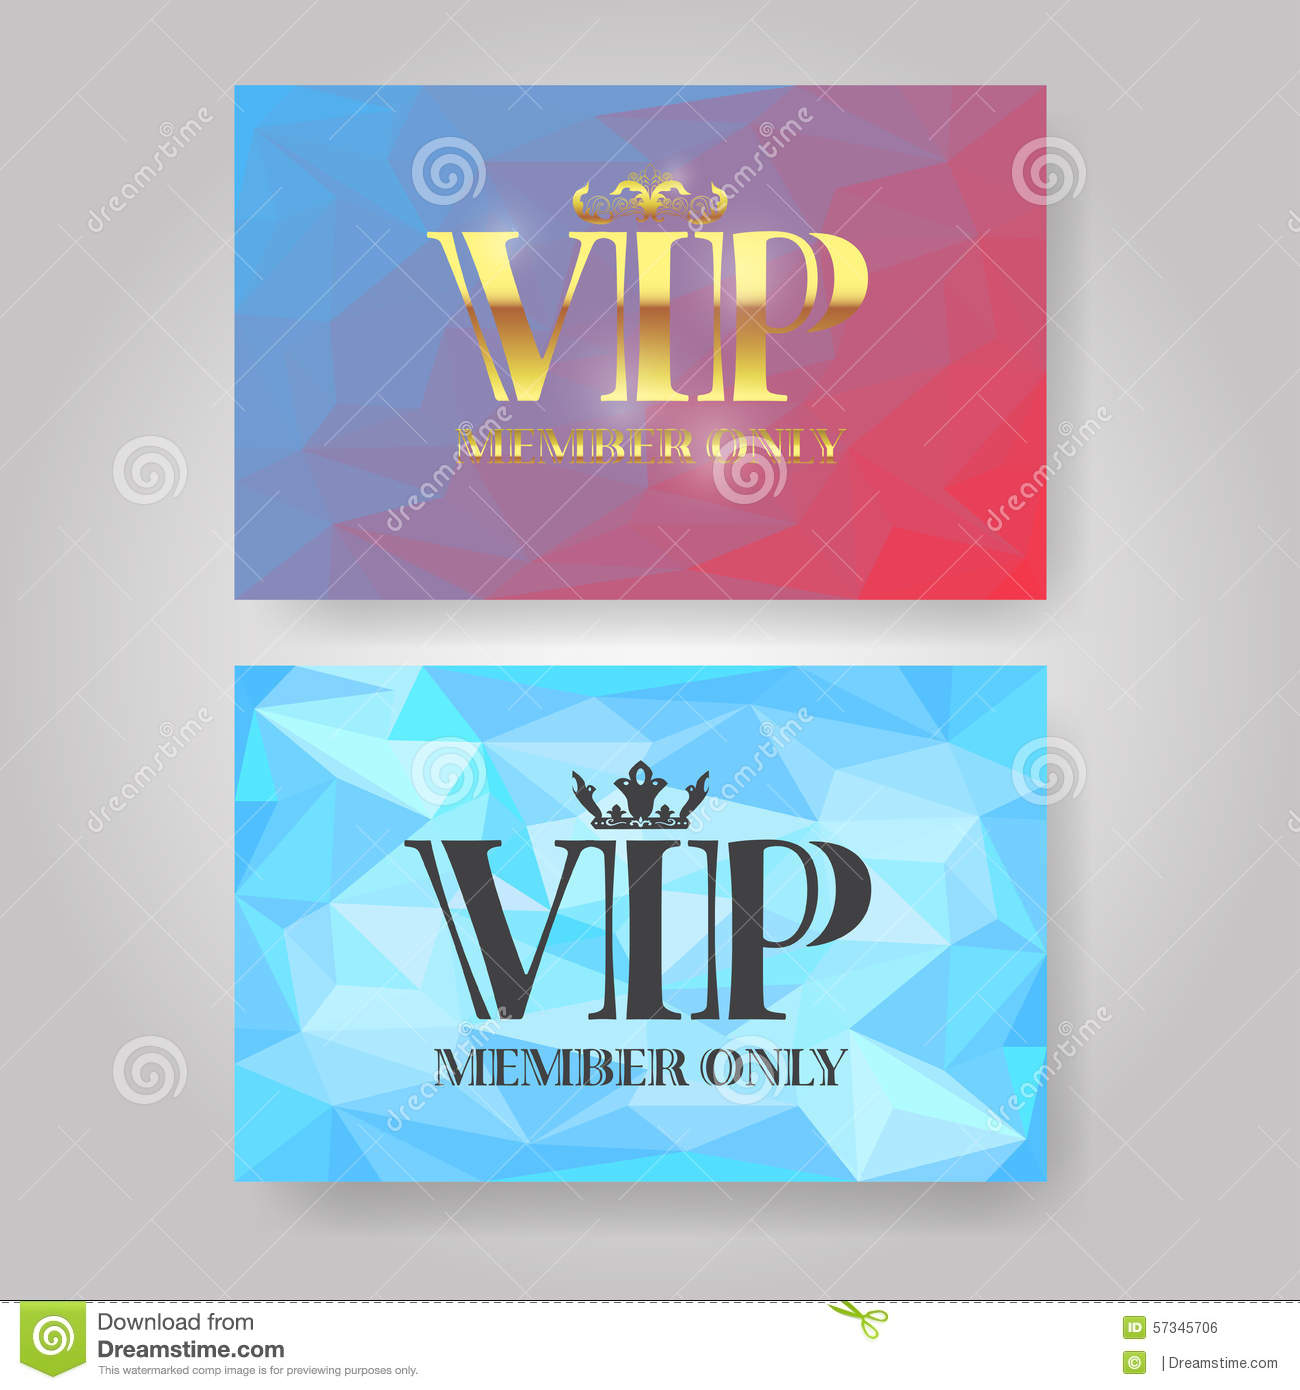 VIP Member Card Design Template  Membership Card Design